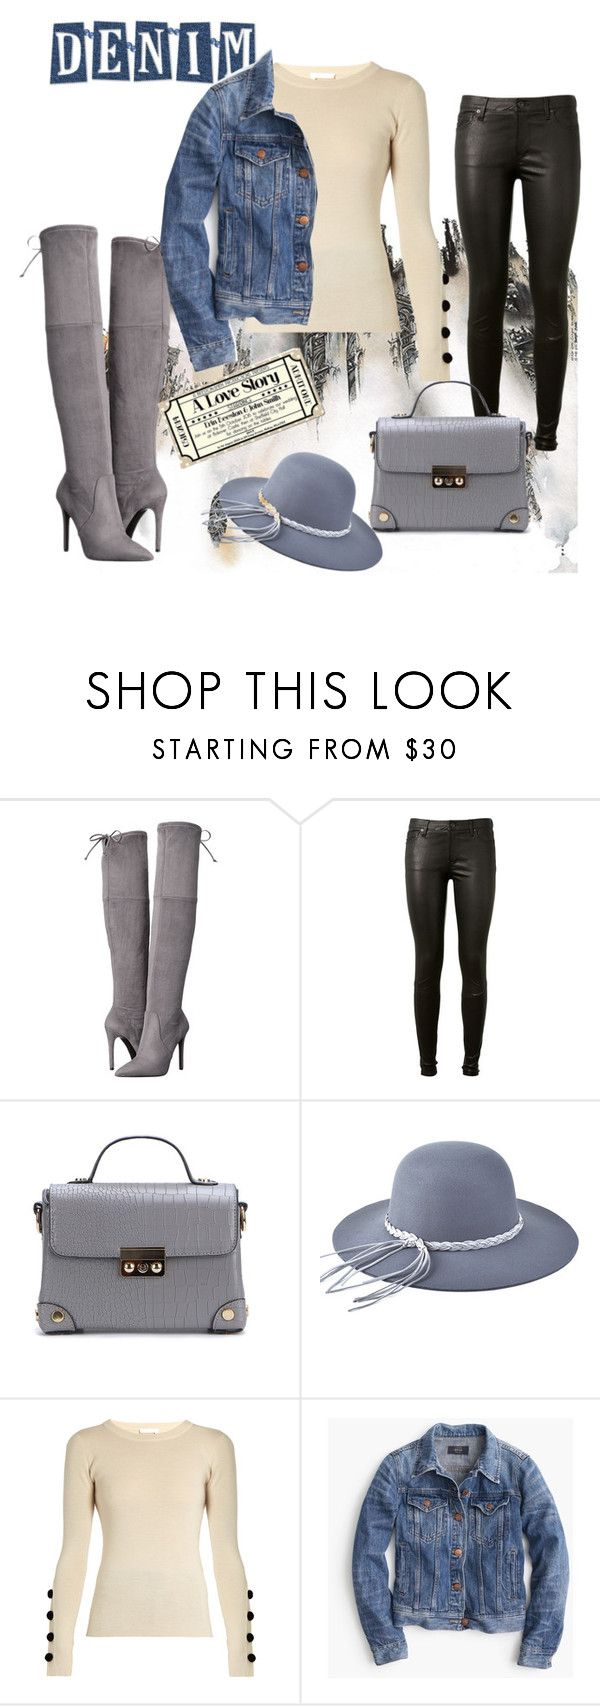 """denim"" by keepitrealforme ❤ liked on Polyvore featuring GUESS, AG Adriano Goldschmied, See by Chloé and J.Crew"